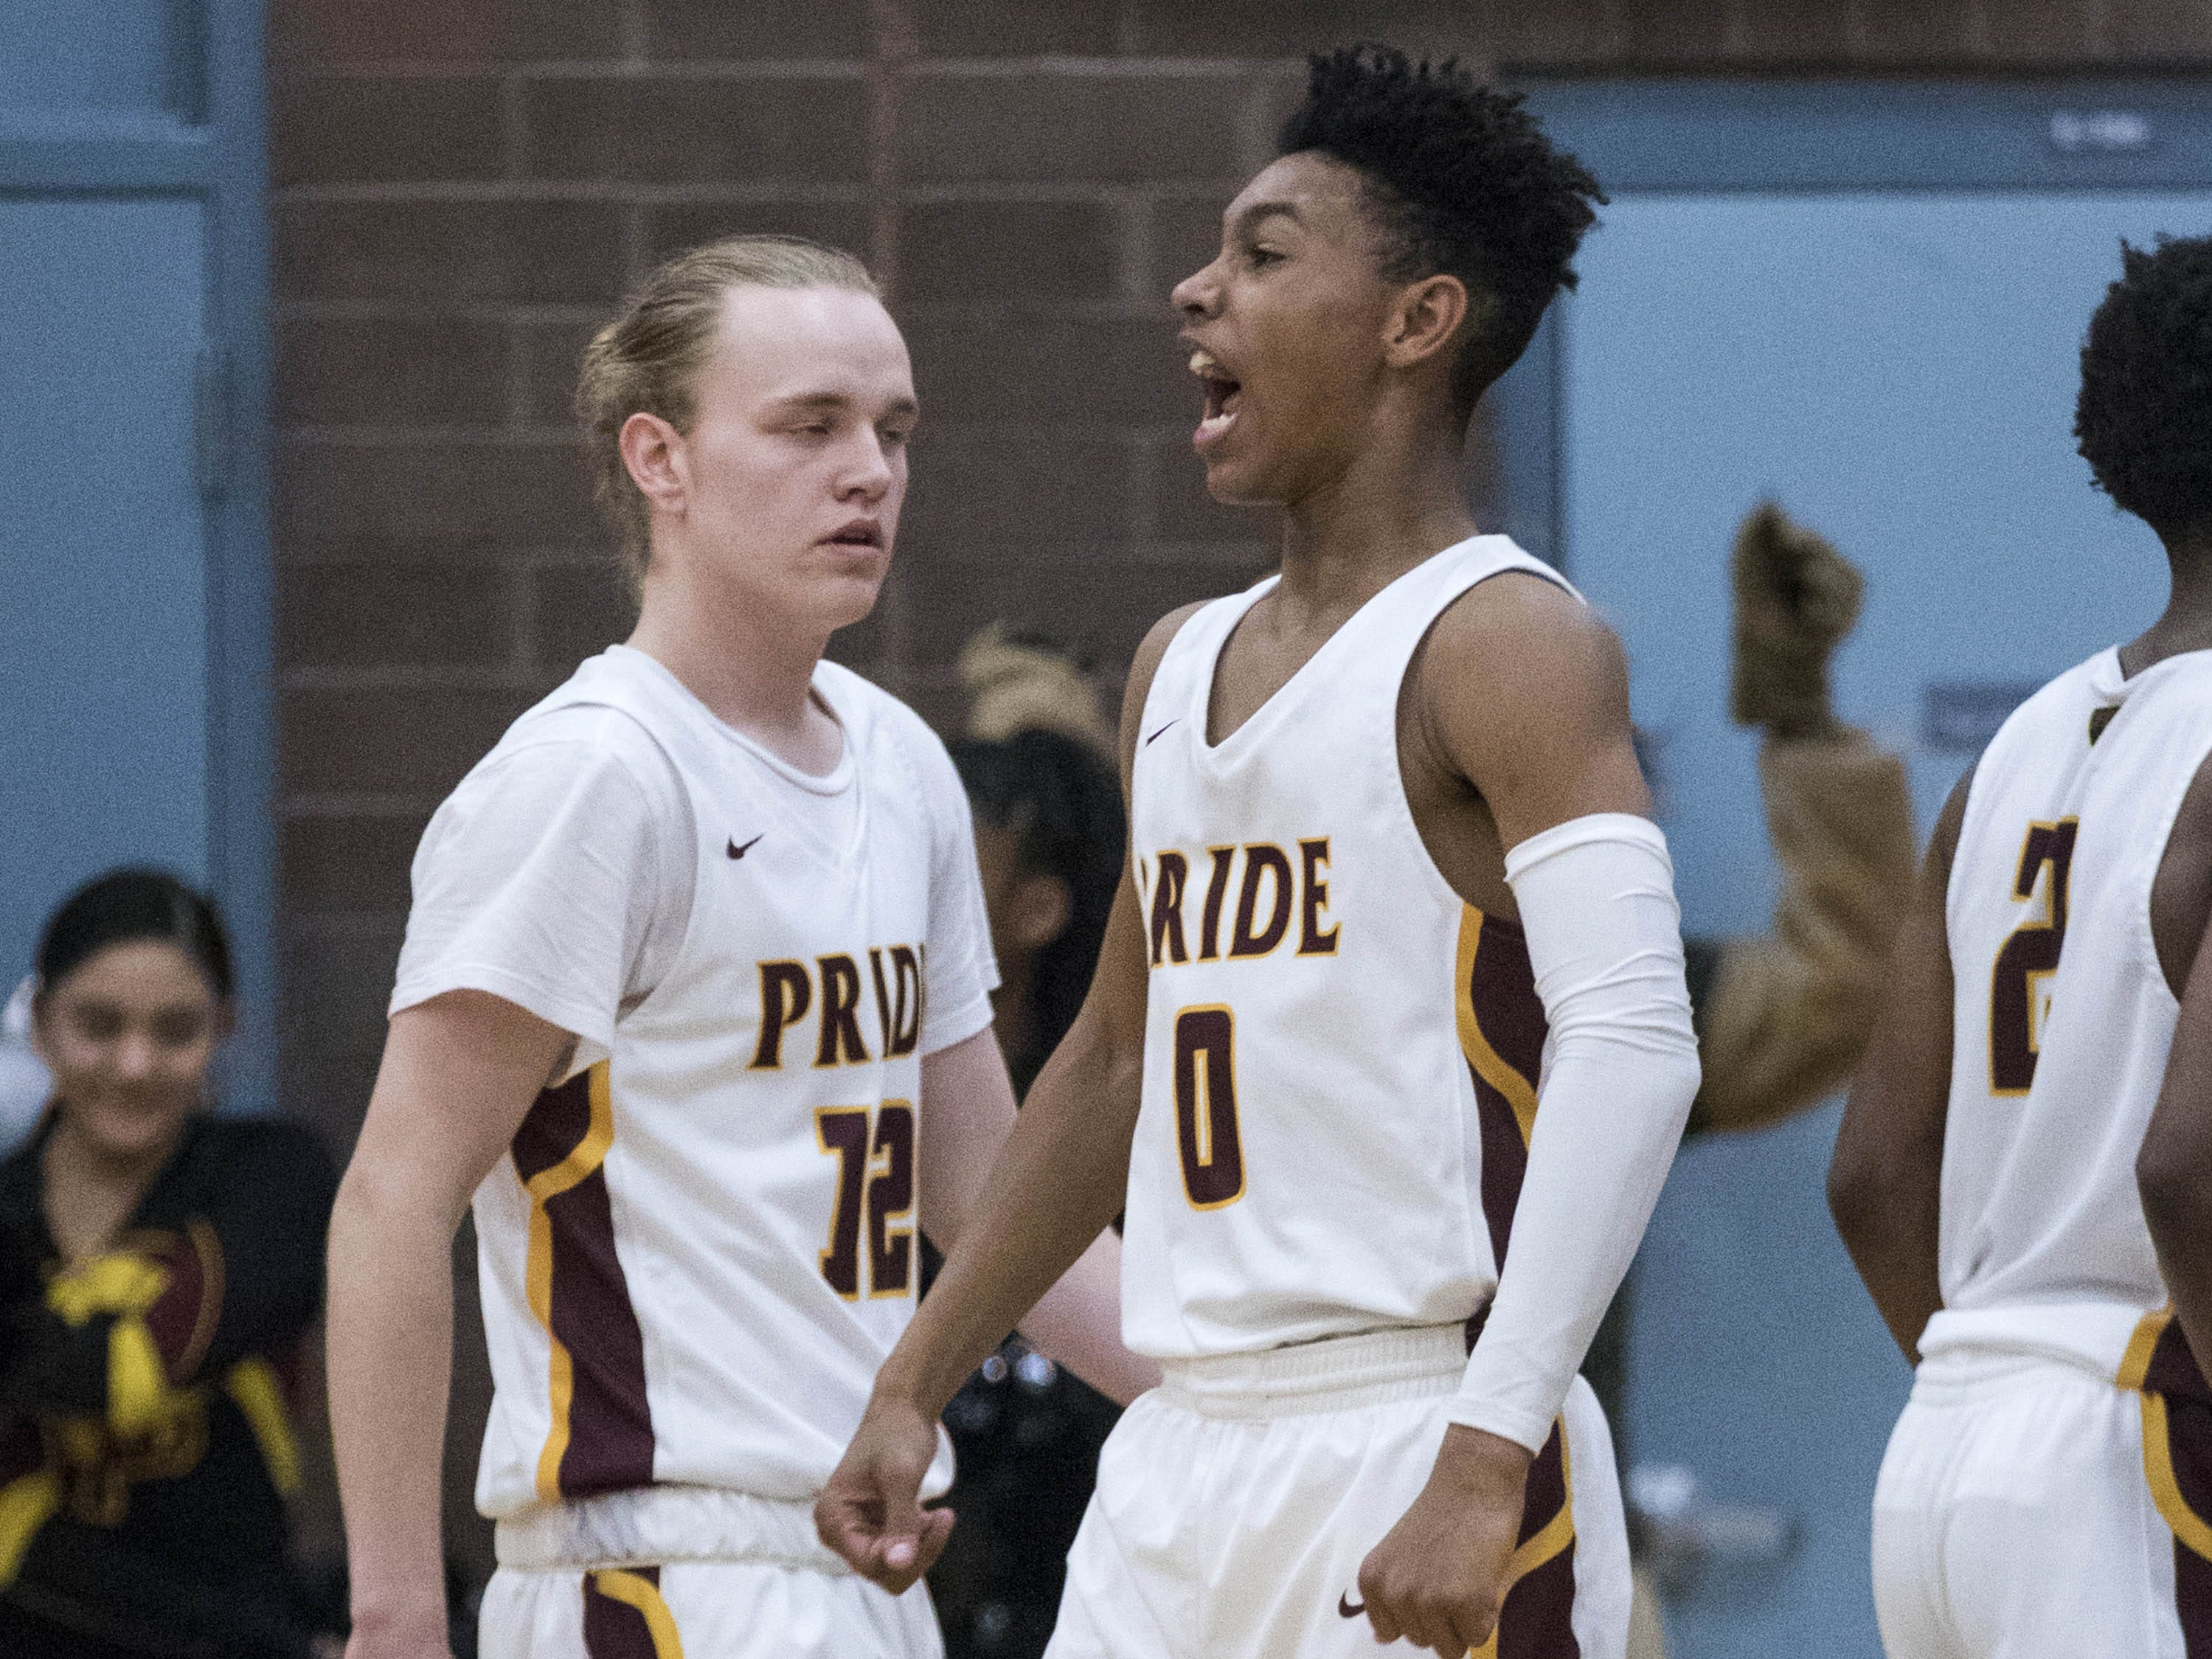 Mountain Pointe's Jason Kimbrough (0) hollers out to the student section after hitting a three point shot against Desert Vista's during their game in Phoenix on Tuesday, Jan. 29.